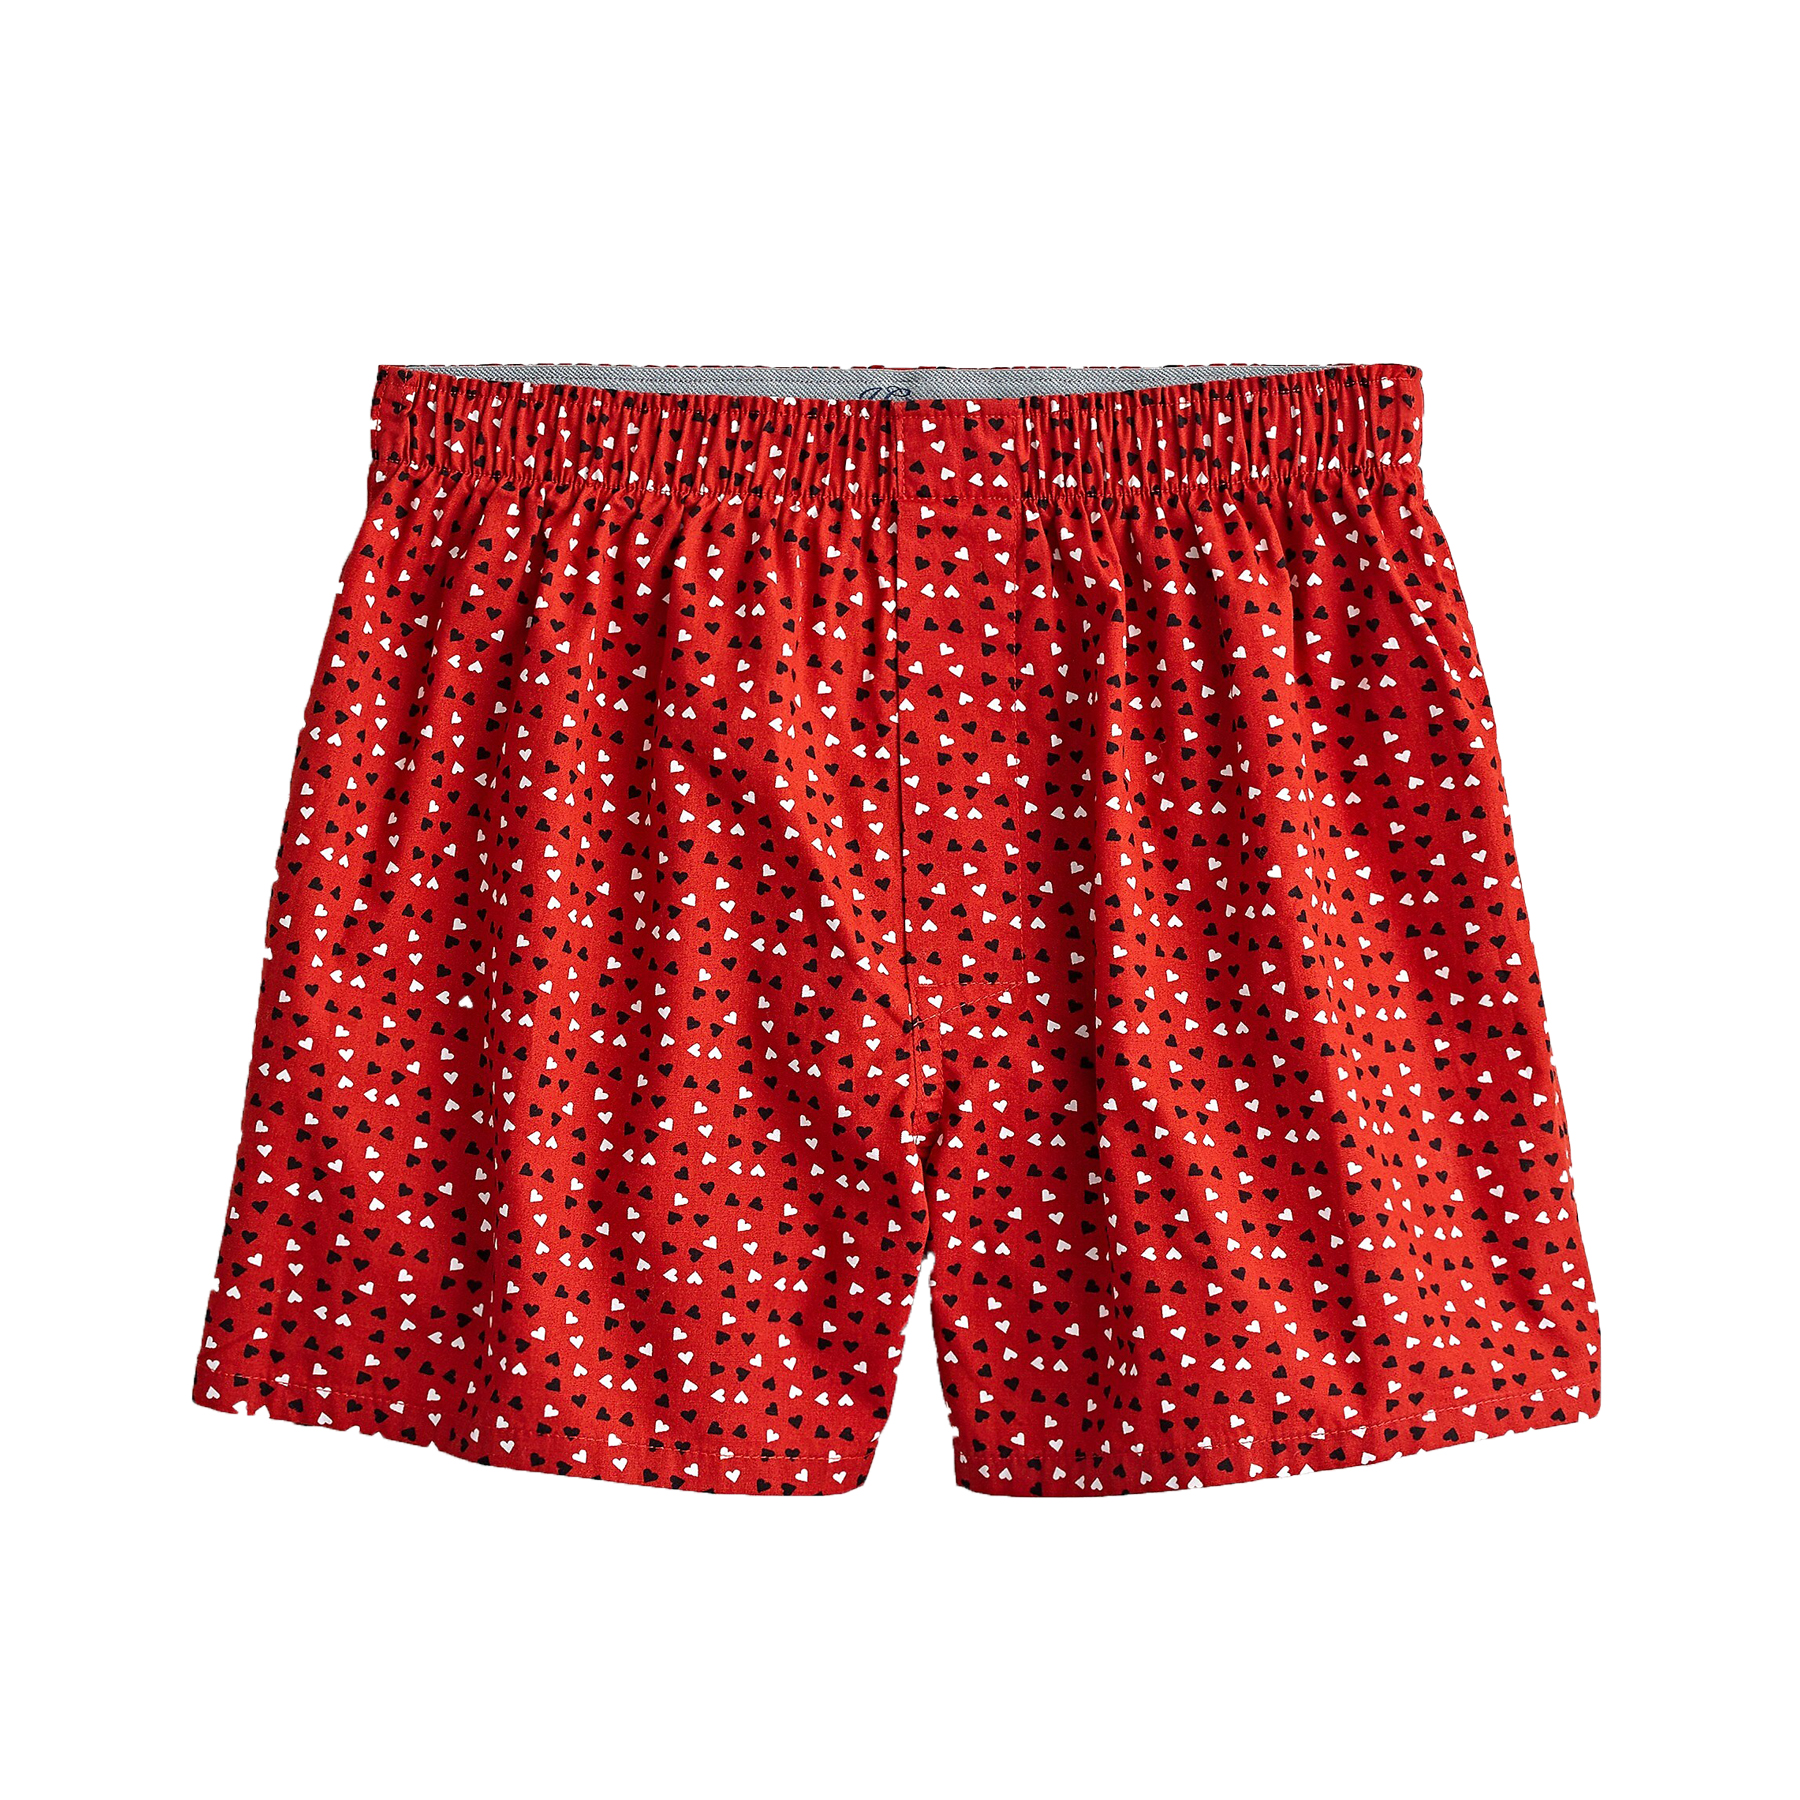 Valentine's Day gifts for him - J. Crew Boxers in Random Heart Print